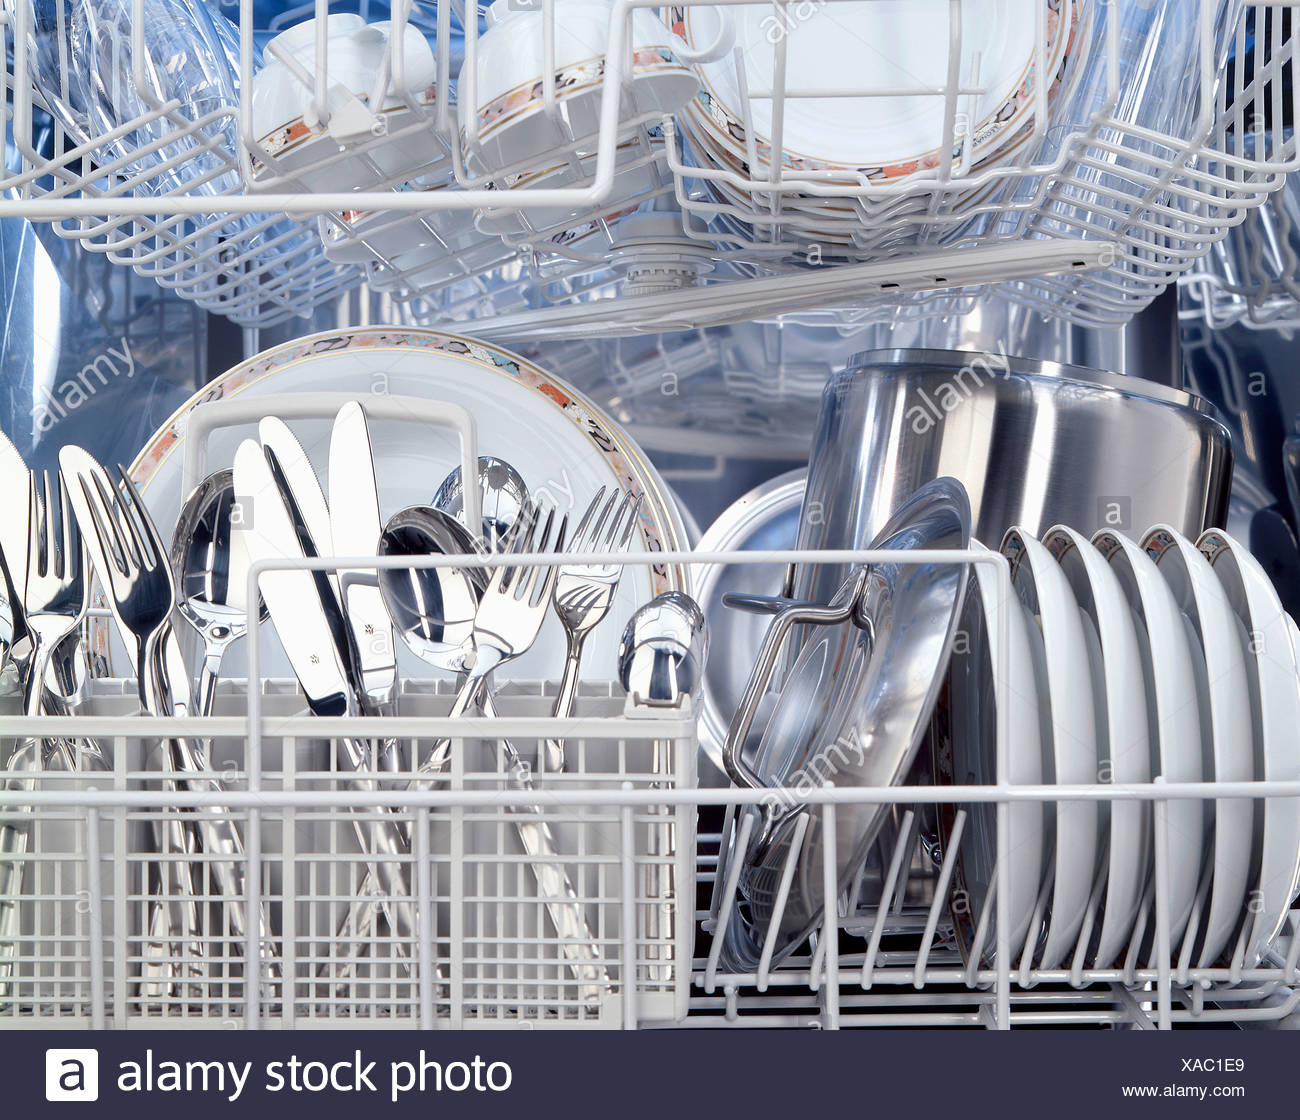 View Of The Inside Of A Dishwasher Stockfotos View Of The Inside